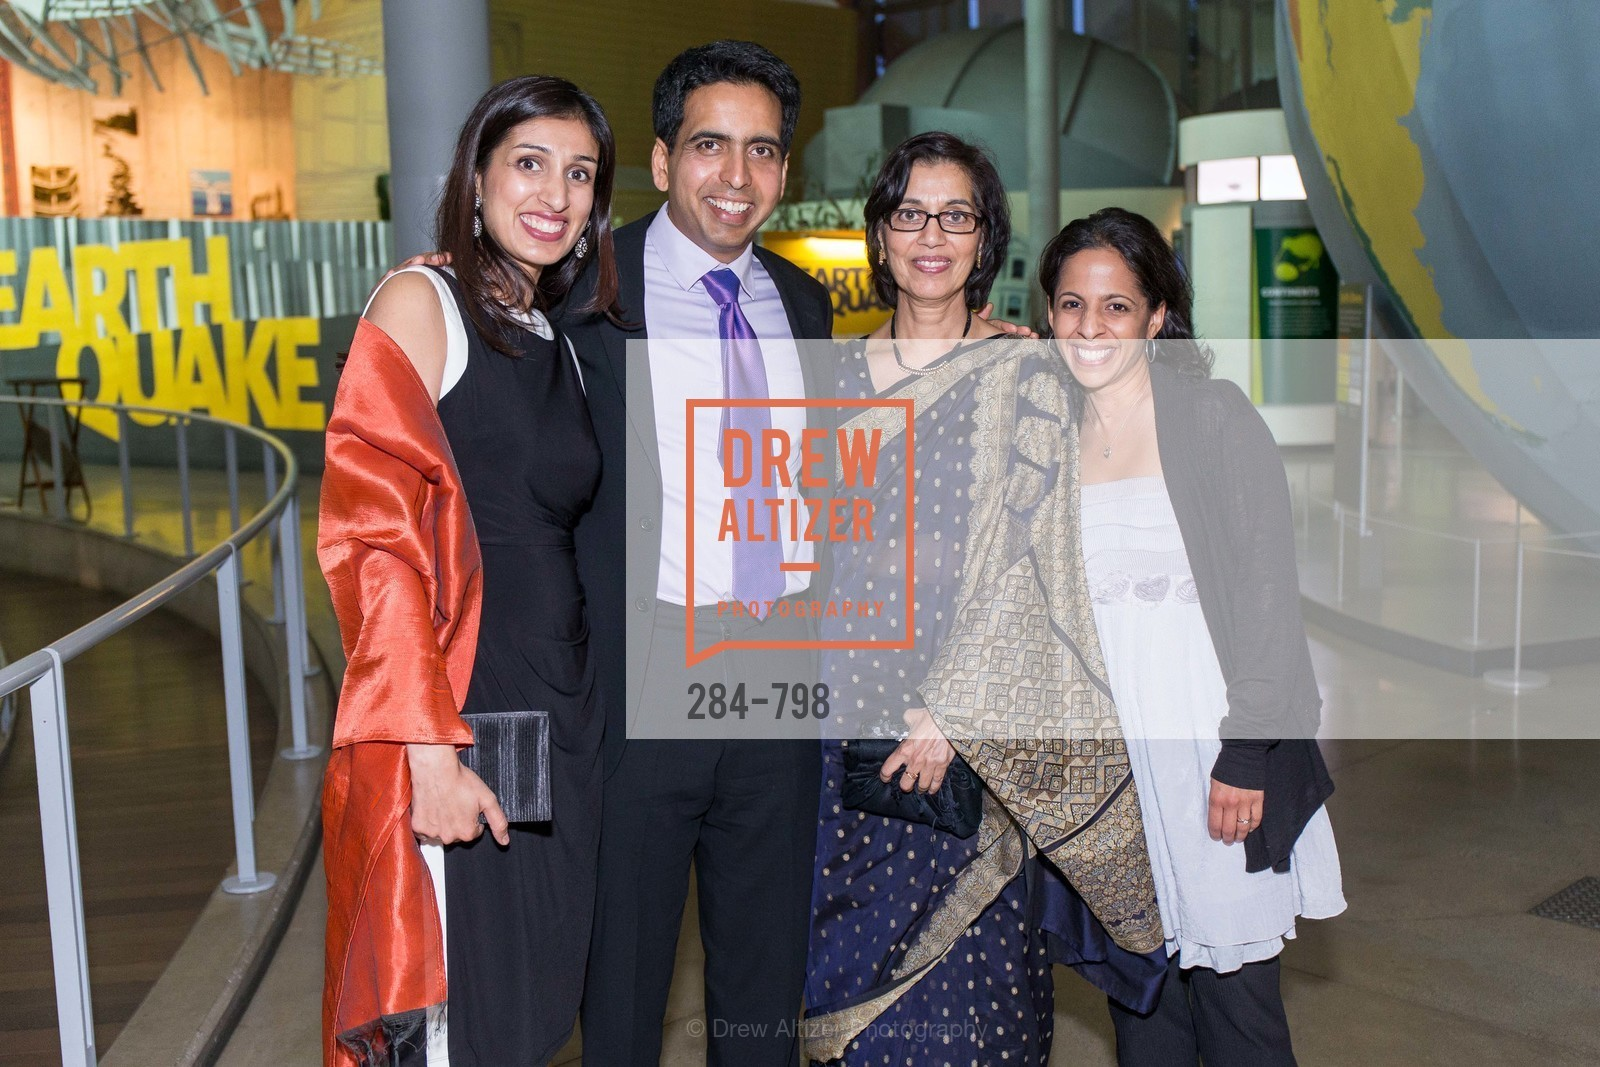 Umaima Marvi, Sal Khan, Naseem Marvi, Sejal Choksi, CALIFORNIA ACADEMY OF SCIENCES - Big Bang Gala 2015, US, April 24th, 2015,Drew Altizer, Drew Altizer Photography, full-service agency, private events, San Francisco photographer, photographer california